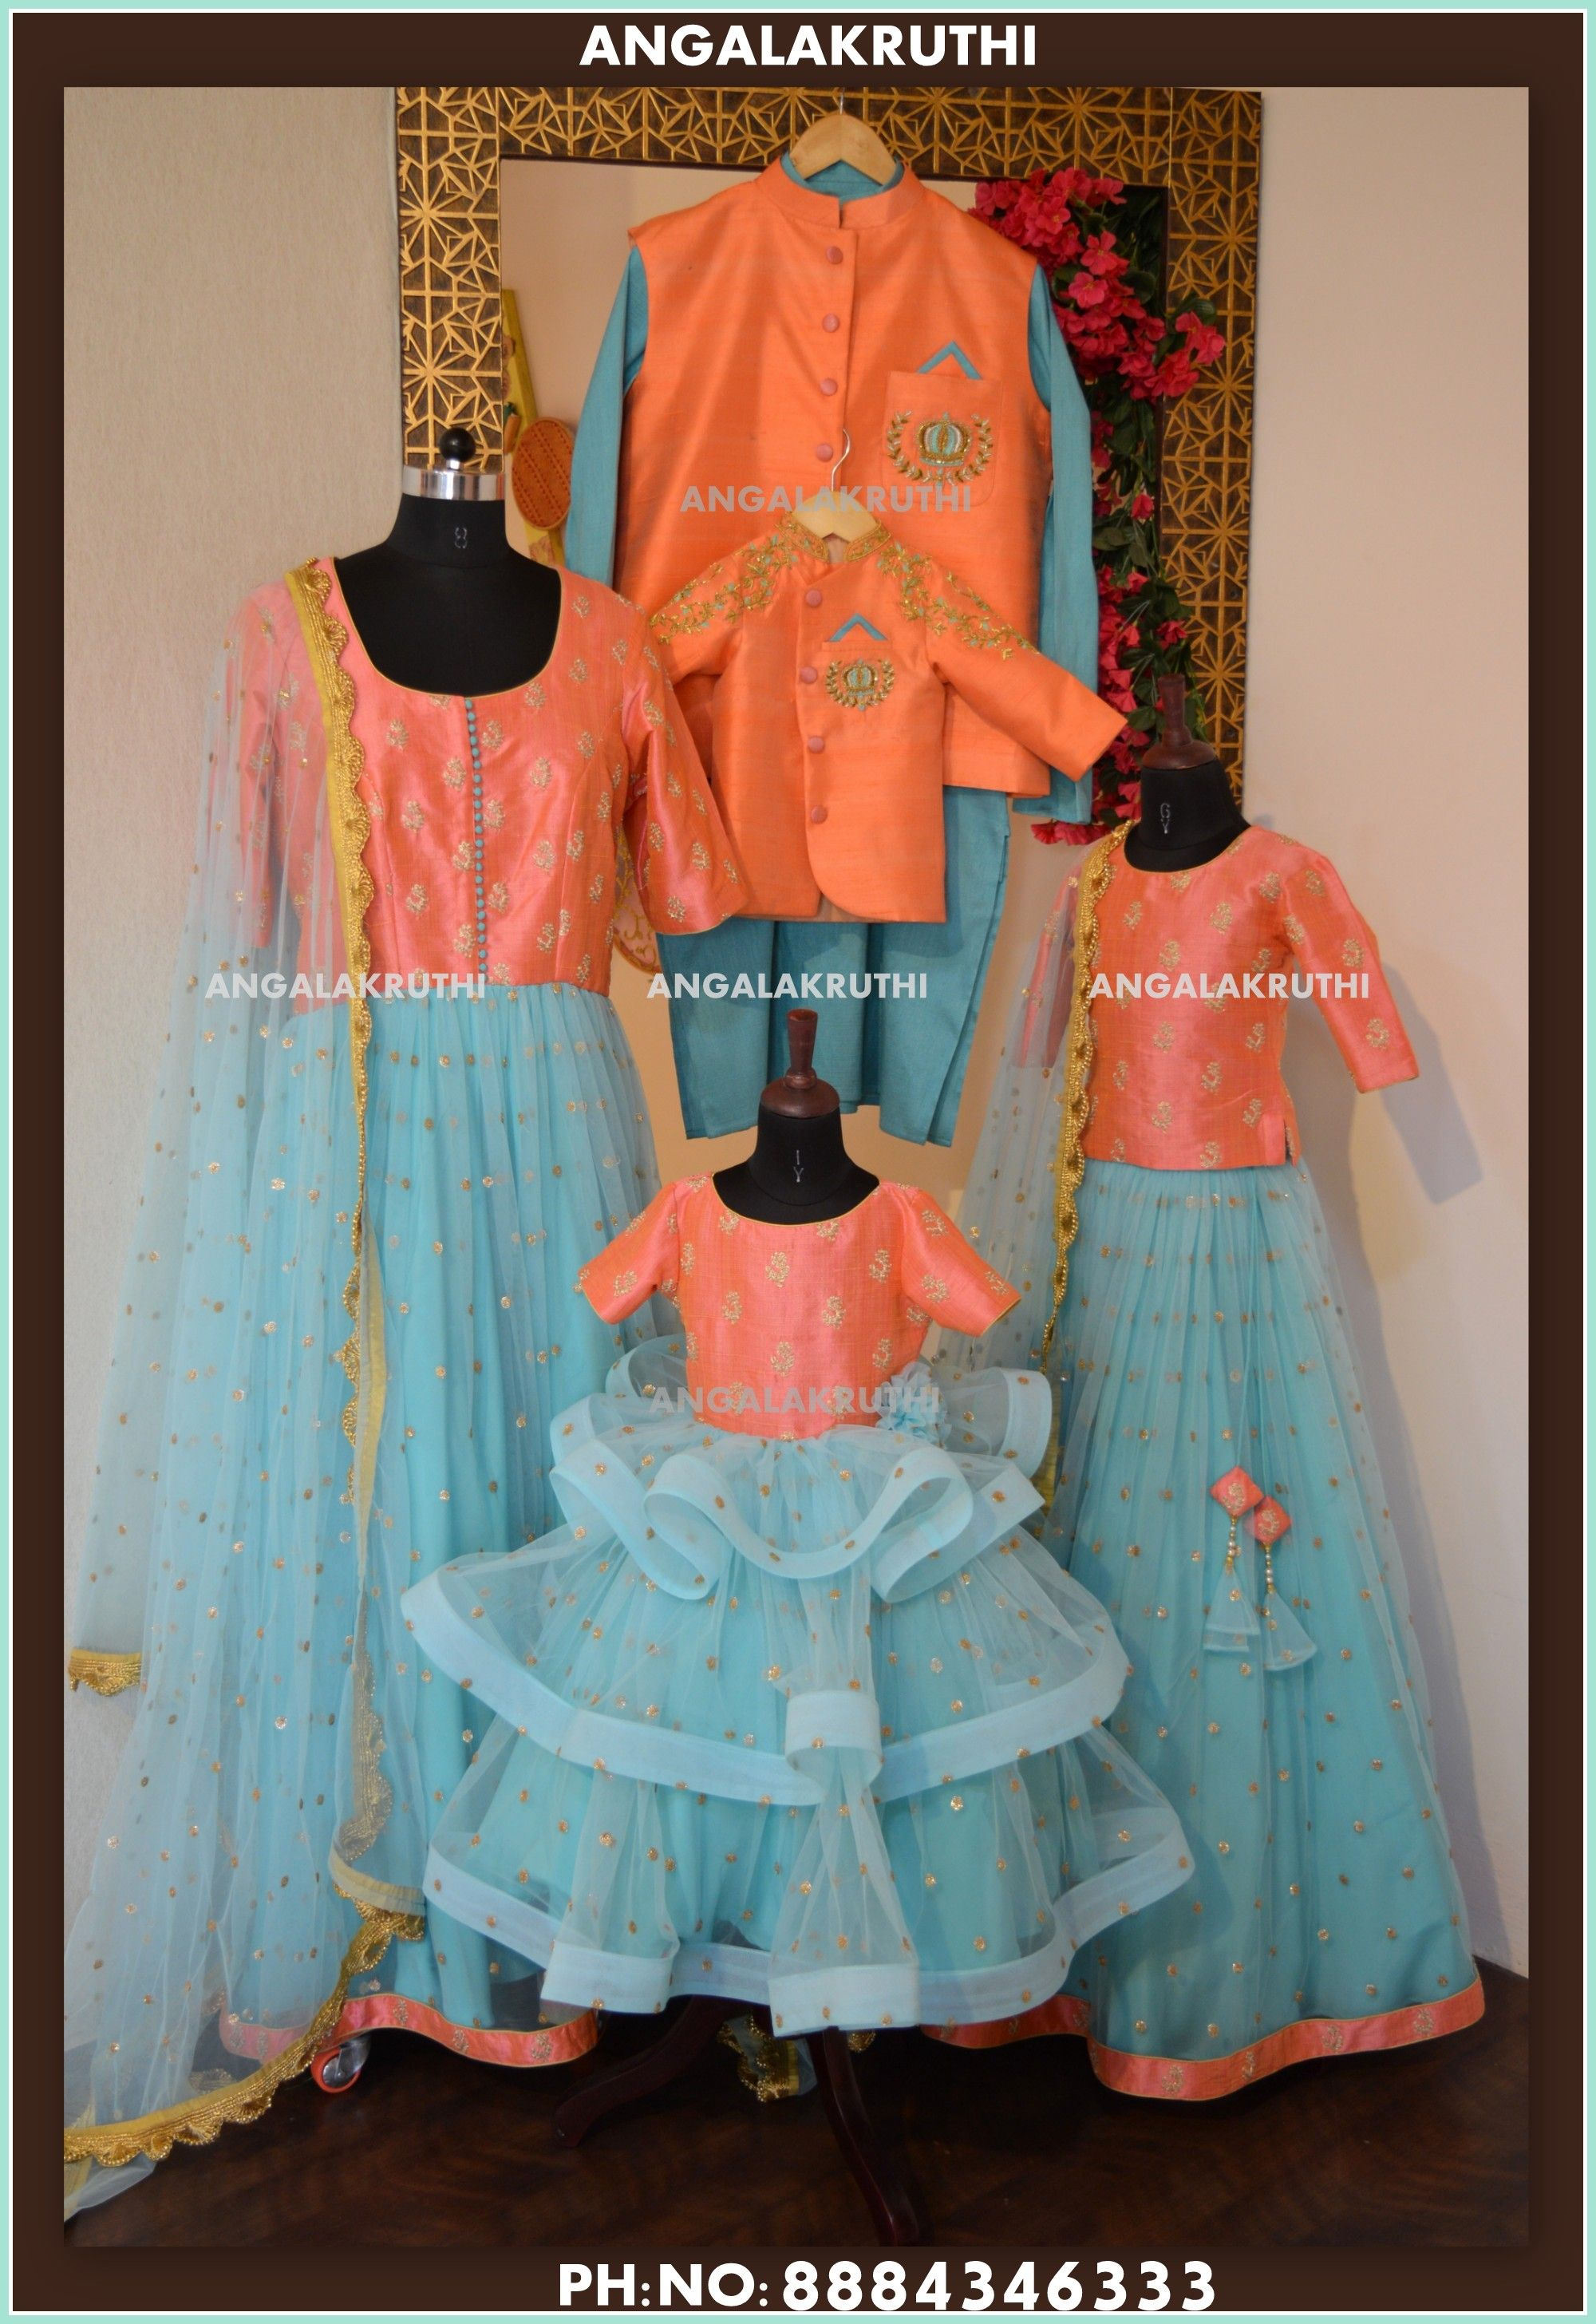 ce1cb63c9c Family matching dress designs in india by Angalakruthi boutique bangalore  mother and kid matching dress designs